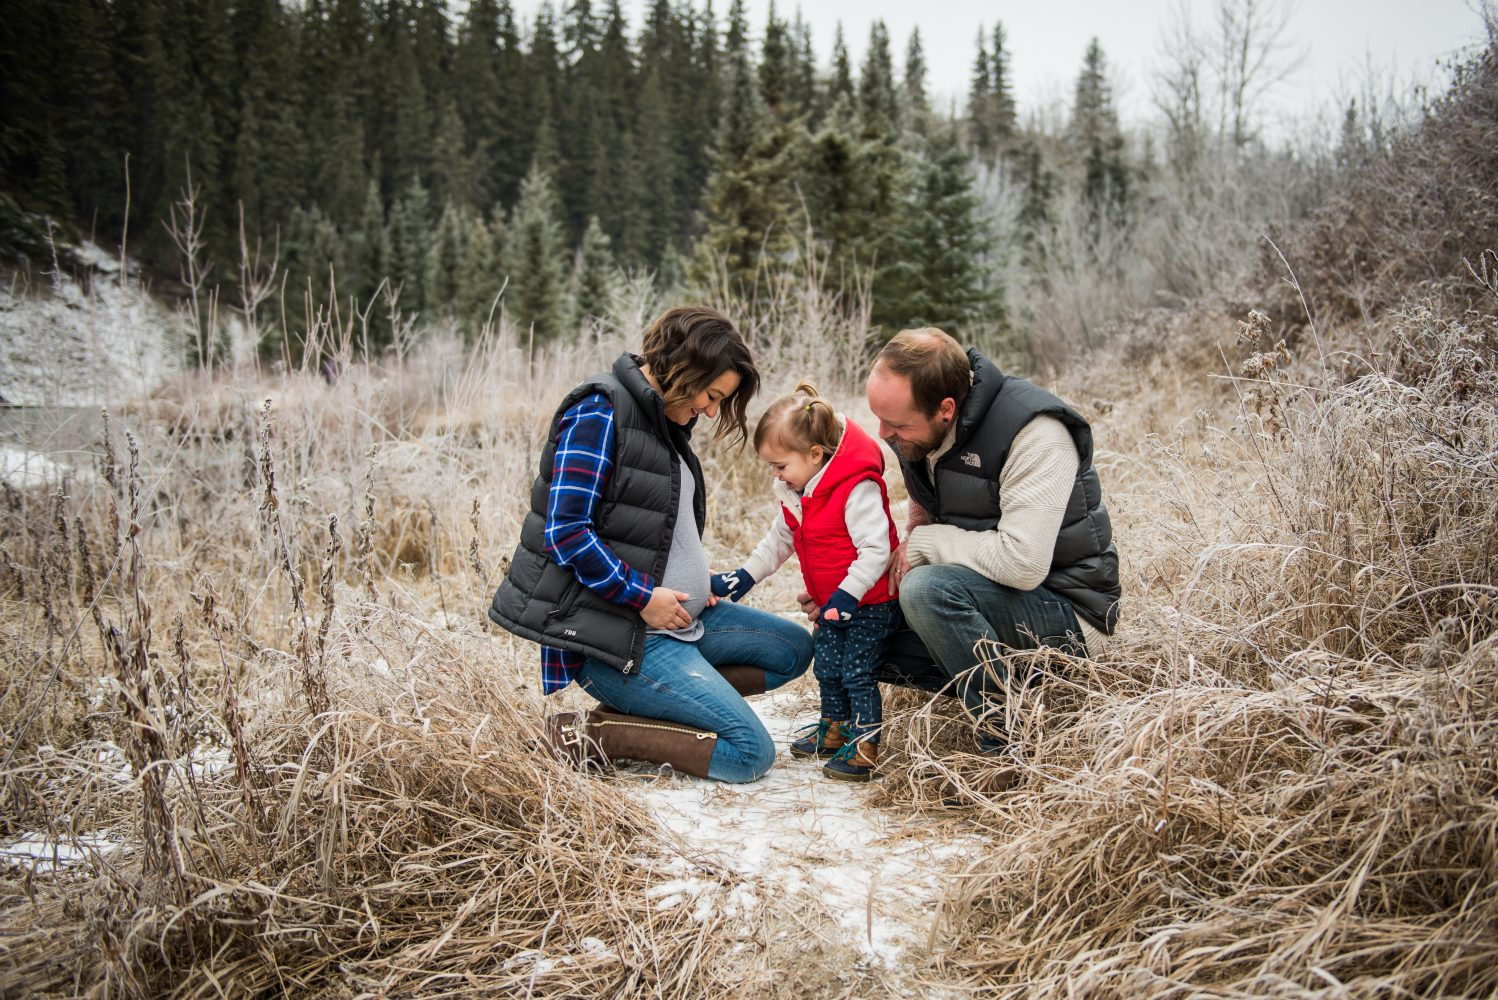 Whitemud park Edmonton Winter family session with a Pregnancy announcement